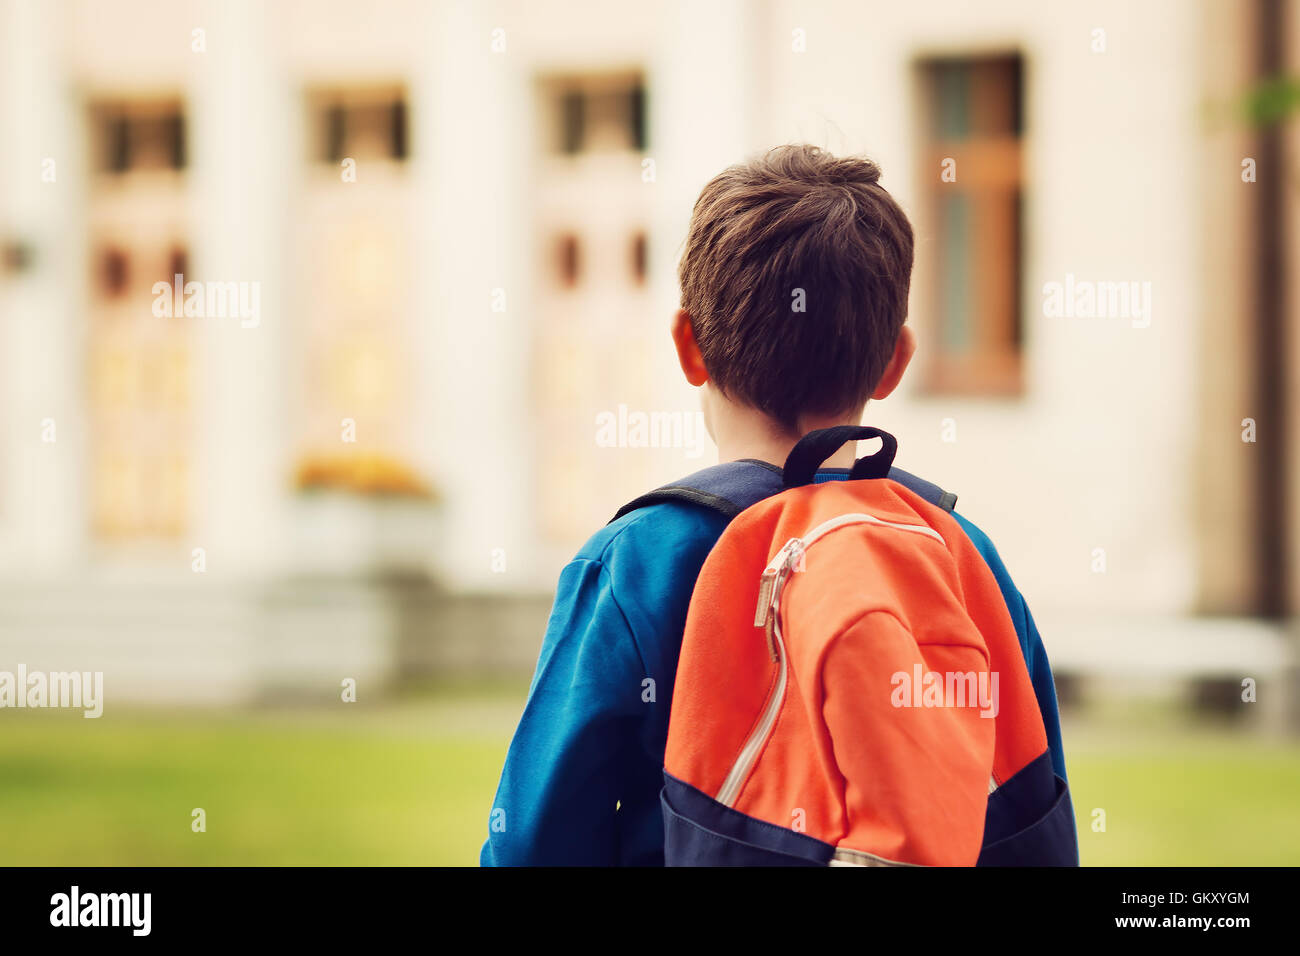 Boy with rucksack infront of a school building - Stock Image